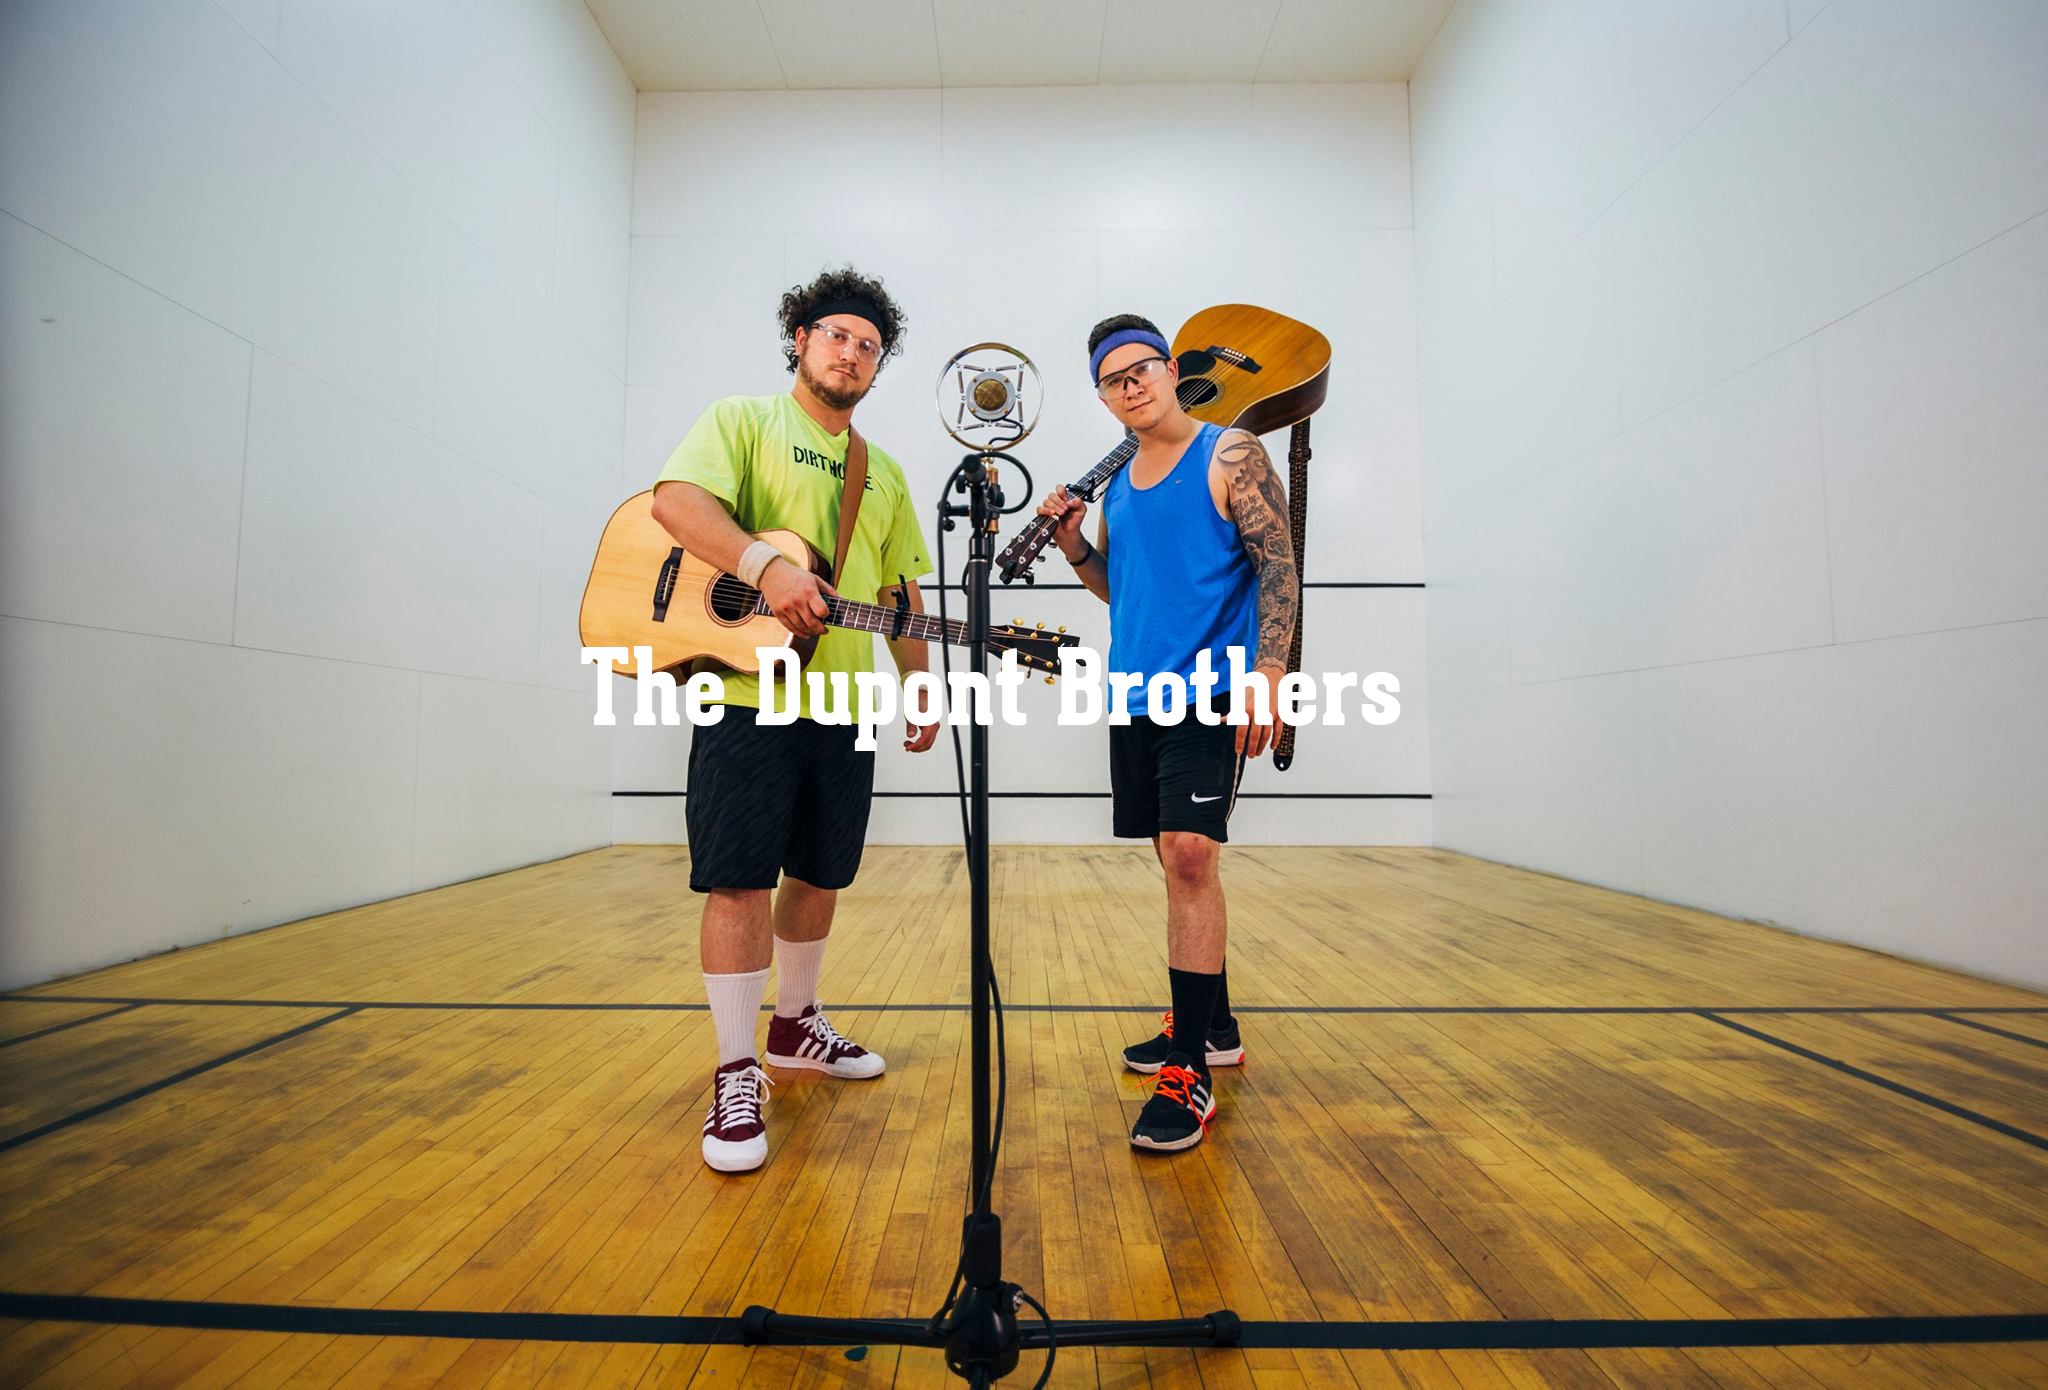 Ever since releasing their debut album in 2013, the brothers are important pillars of the Burlington music scene. Watch their session, live from a racquetball court.